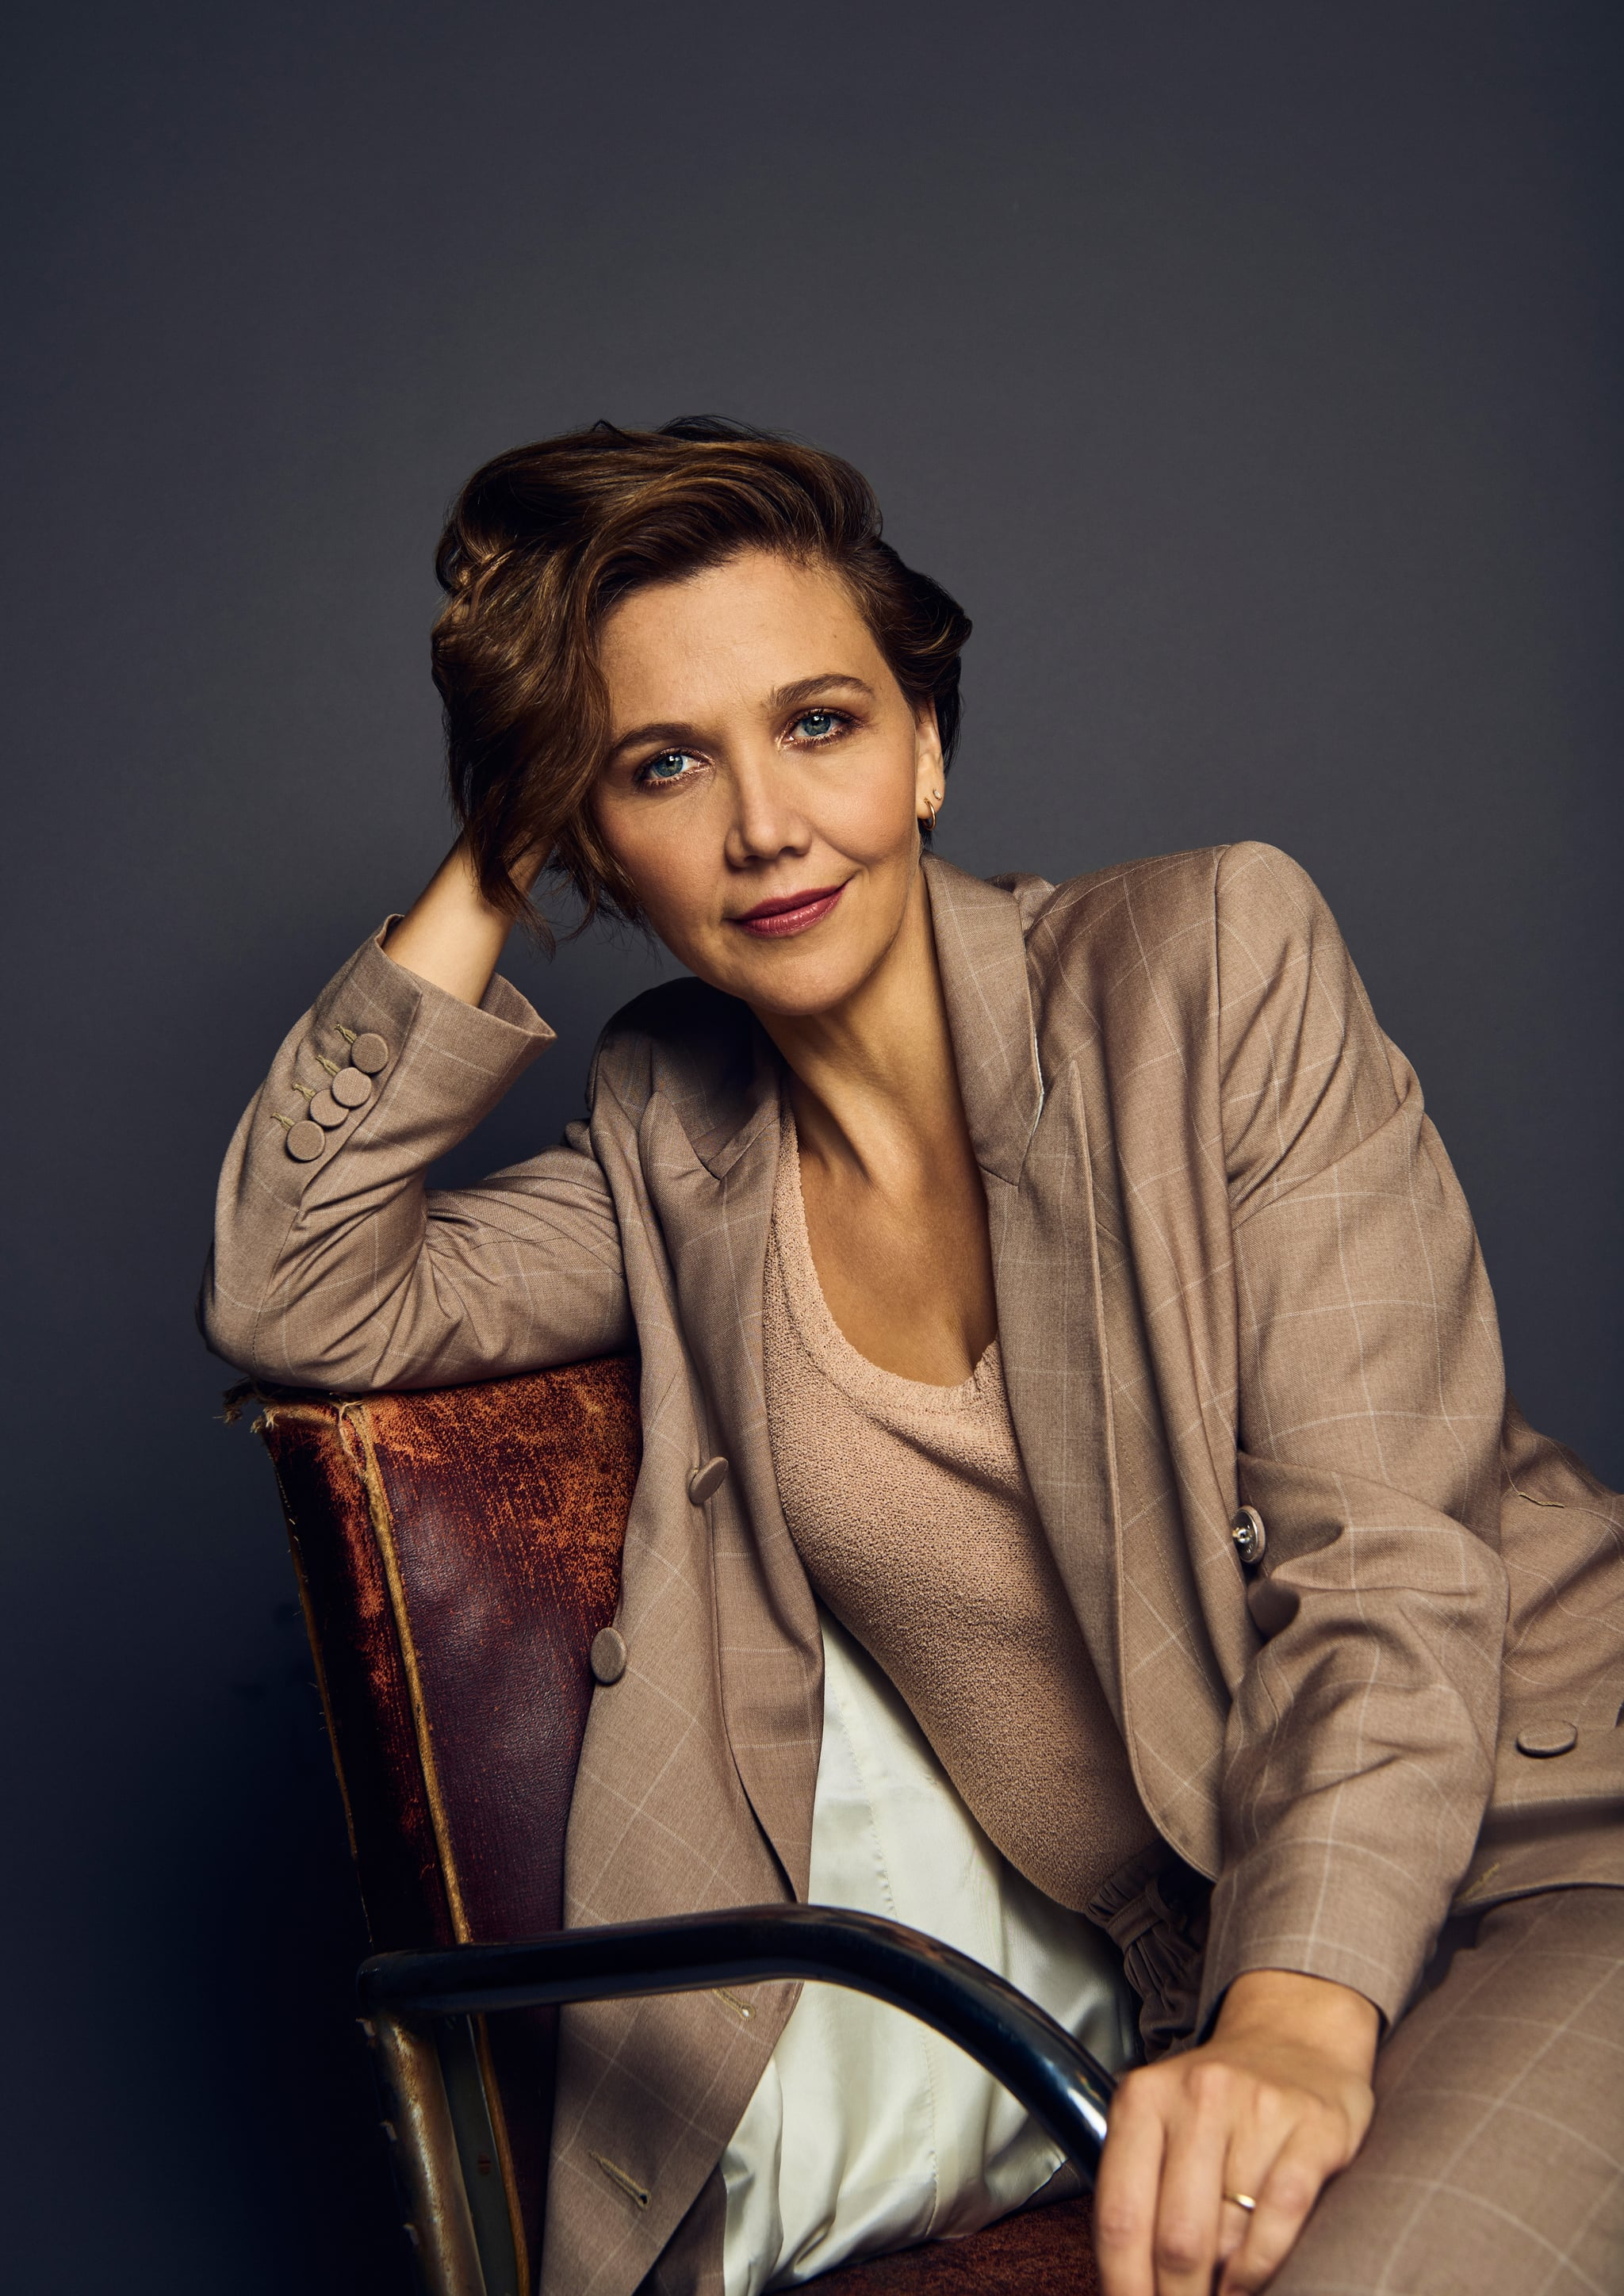 TORONTO, ON - SEPTEMBER 10:  Actor Maggie Gyllenhaal from the film 'The Kindergarten Teacher'' poses for a portrait during the 2018 Toronto International Film Festival at Intercontinental Hotel on September 8, 2018 in Toronto, Canada.  (Photo by Gareth Cattermole/Contour by Getty Images)